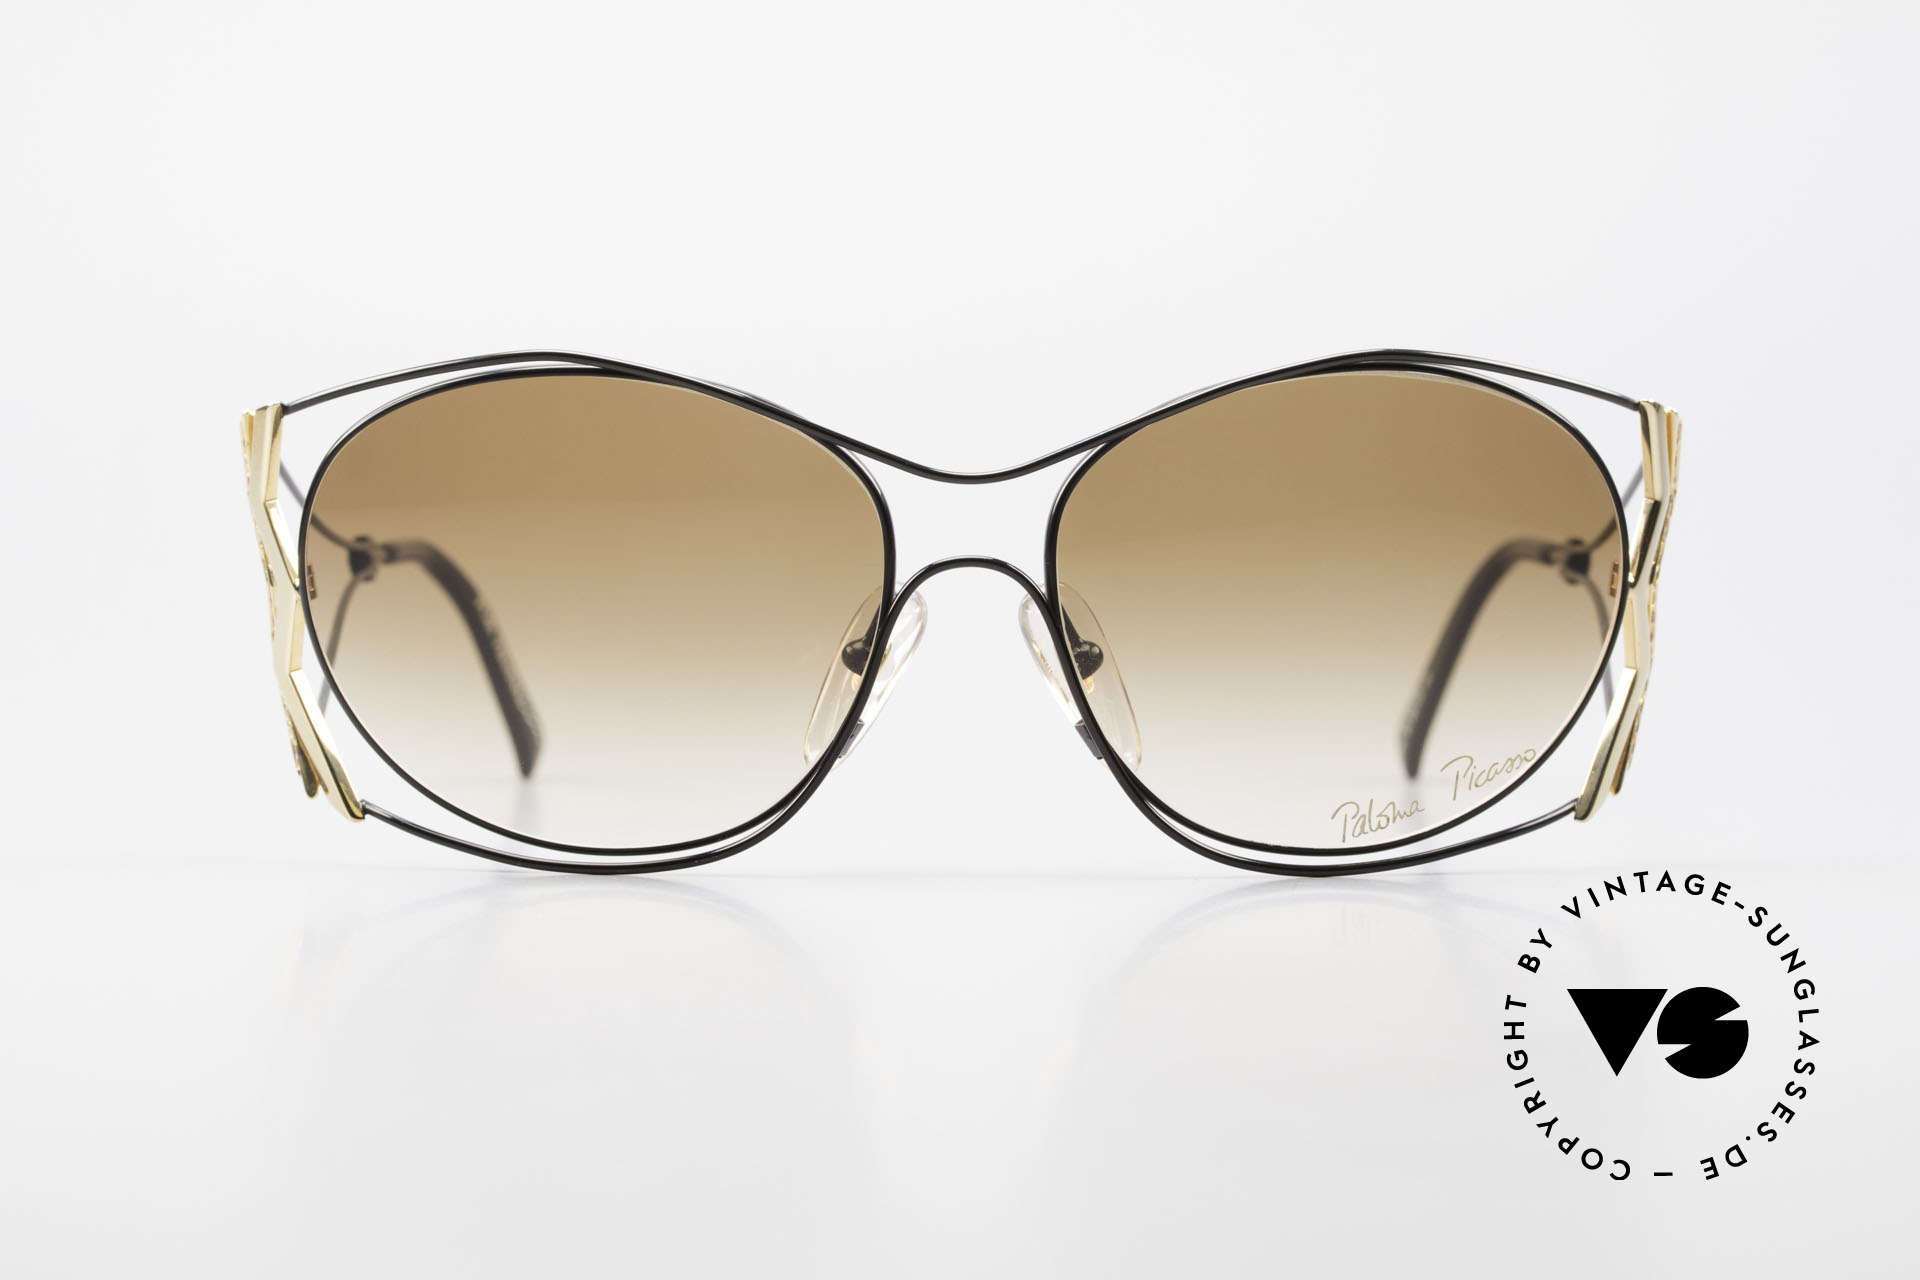 Paloma Picasso 3707 90s Ladies Shades Rhinestones, playful and elegant at the same time; just glamorous, Made for Women